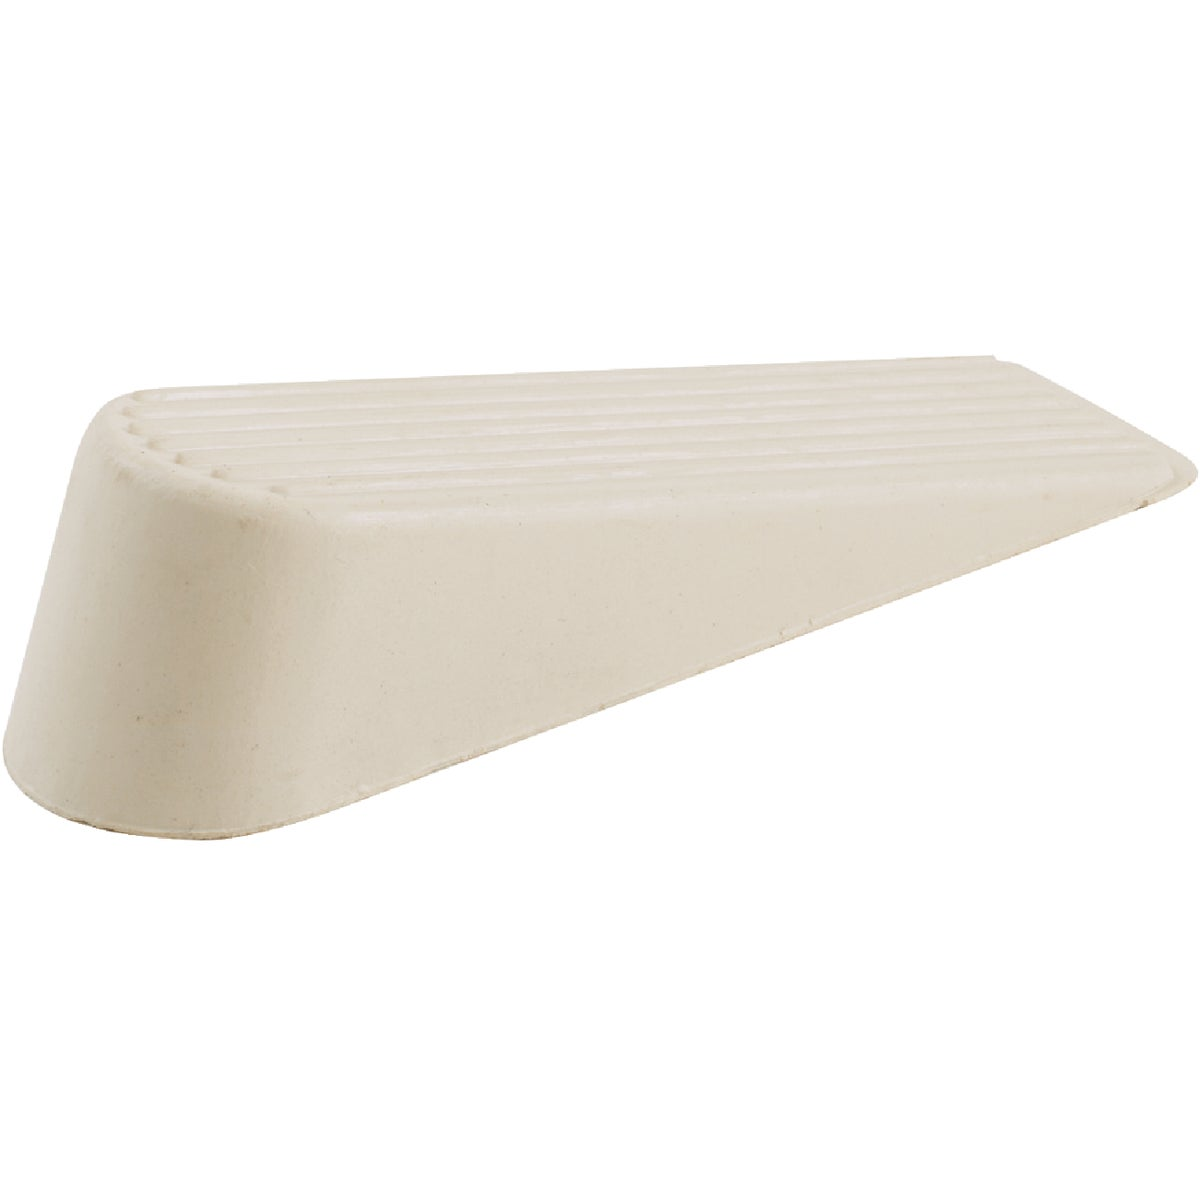 ALMOND RUBBER DOOR STOP - 227604 by Shepherd Hardware